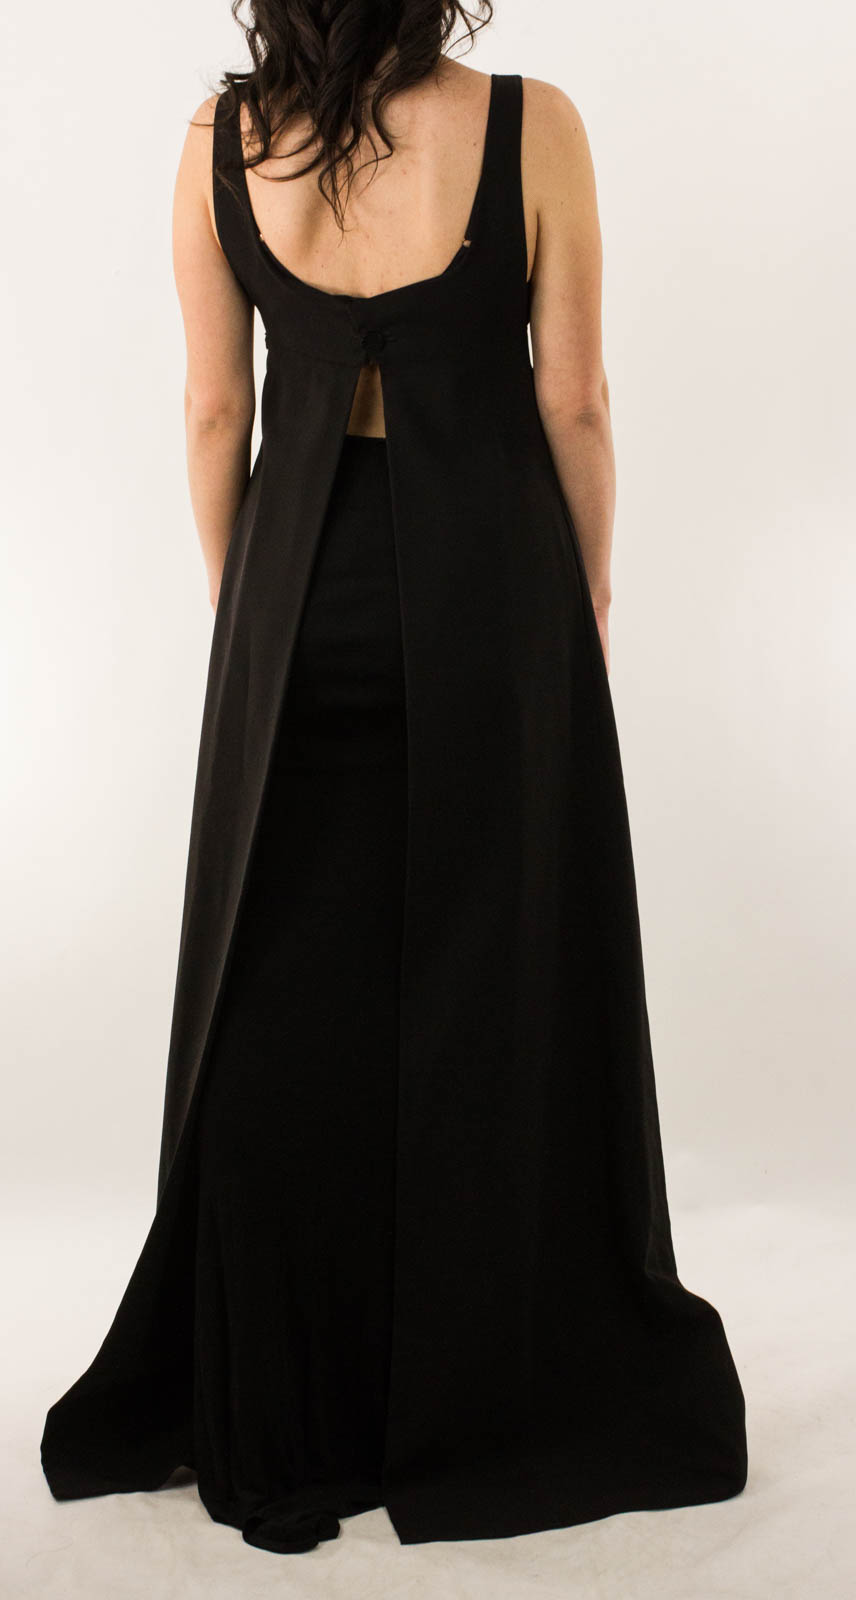 Chanel Black Rayon Full Length Evening Gown With Low Back